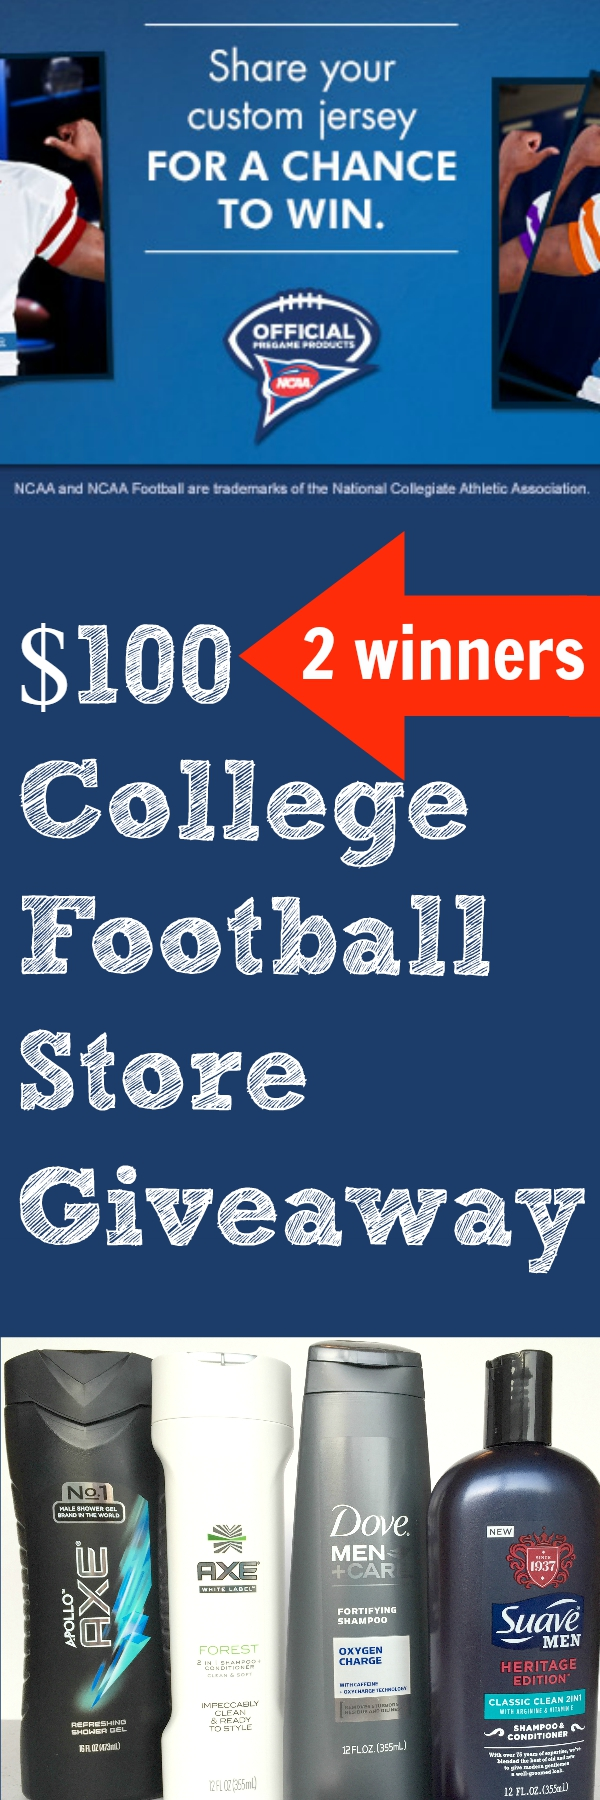 $100 College Football Store Giveaway (2 winners)